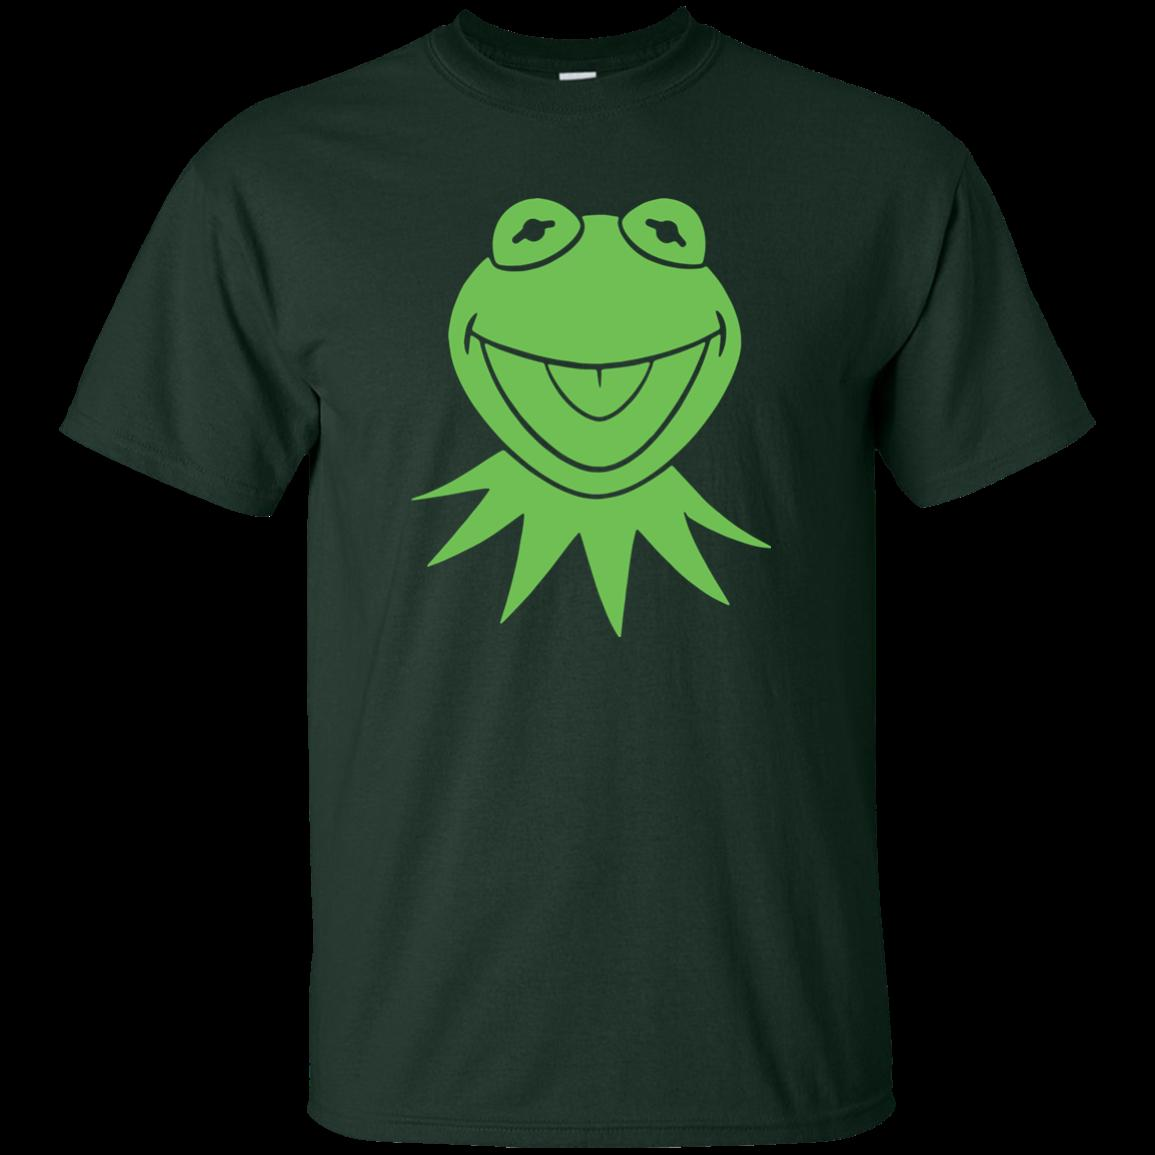 d9865a49 Kermit The Frog, Retro, Jim Henson, Muppets, Puppet, Muppet Show, Retro, T  Shirt Funny Unisex Casual Tshirt Top T Shirts Sale Novelty Shirts From ...